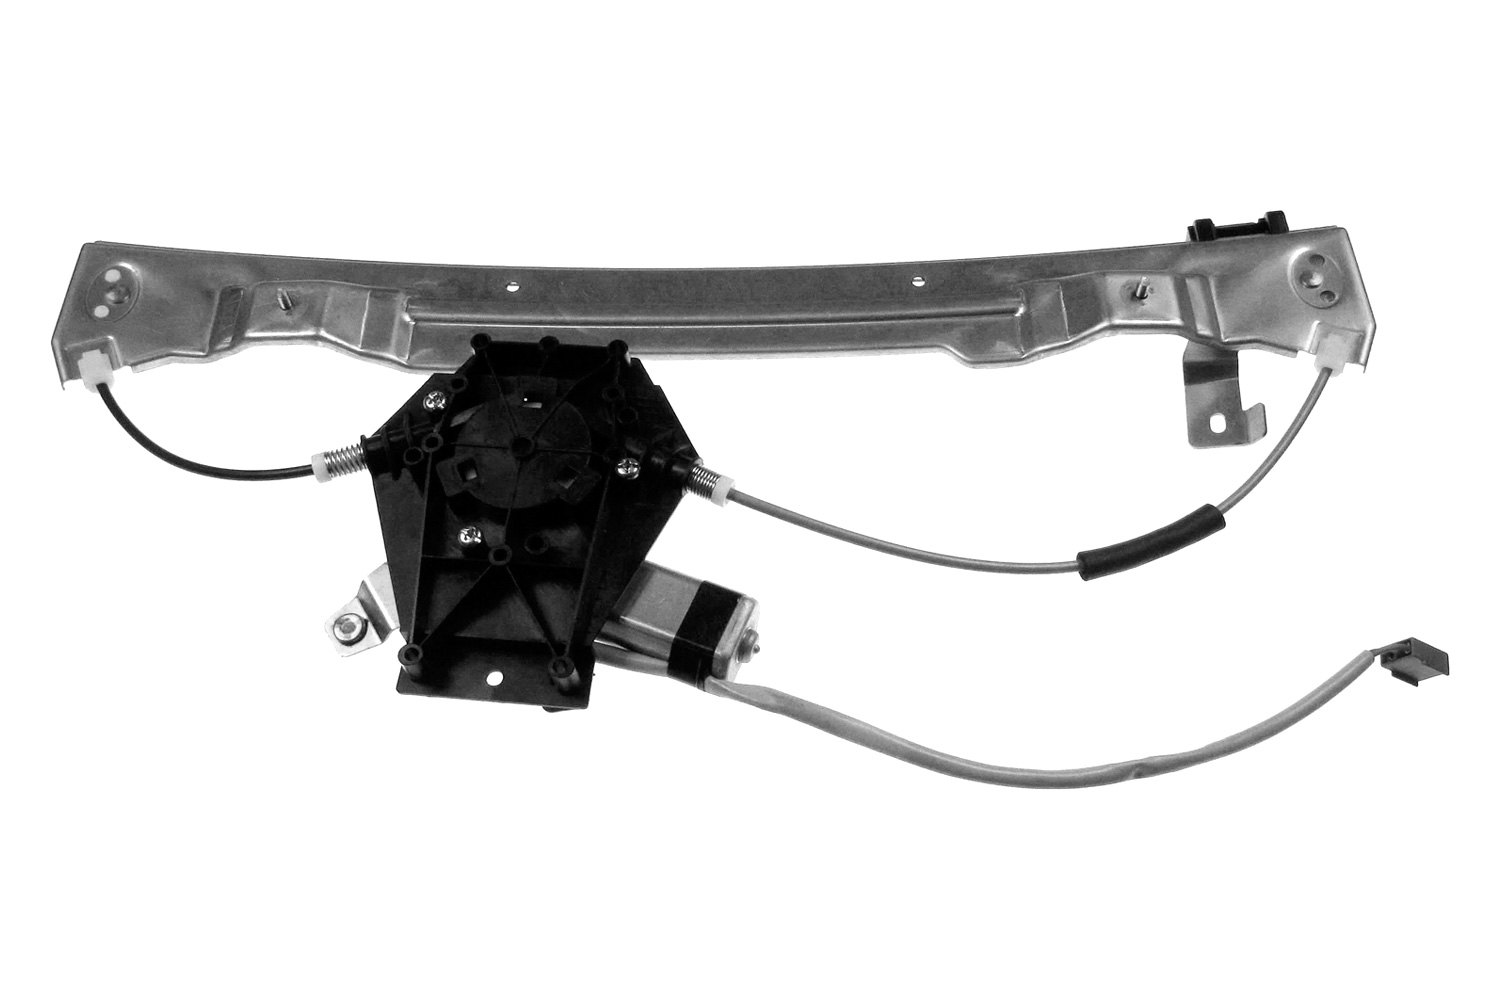 Dorman 748 506 ford explorer 2002 power window regulator for 2002 ford explorer right rear window regulator